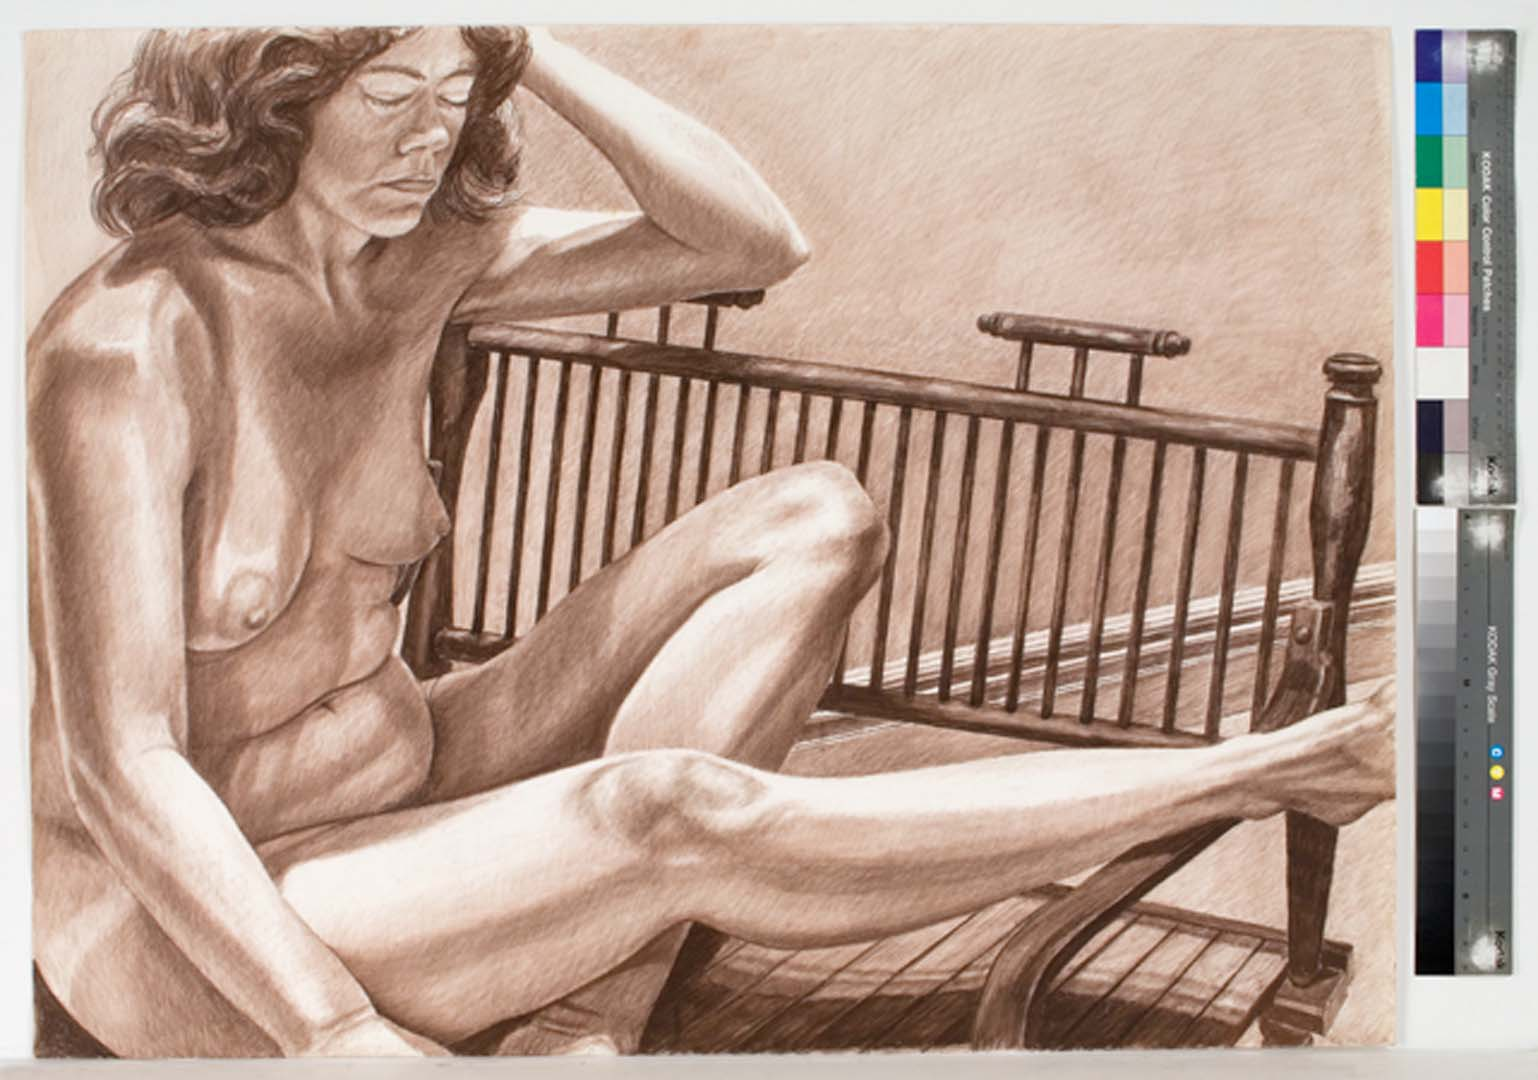 1983 Model with Leg Extended on Wooden Bench Conte Crayon 30 x 40